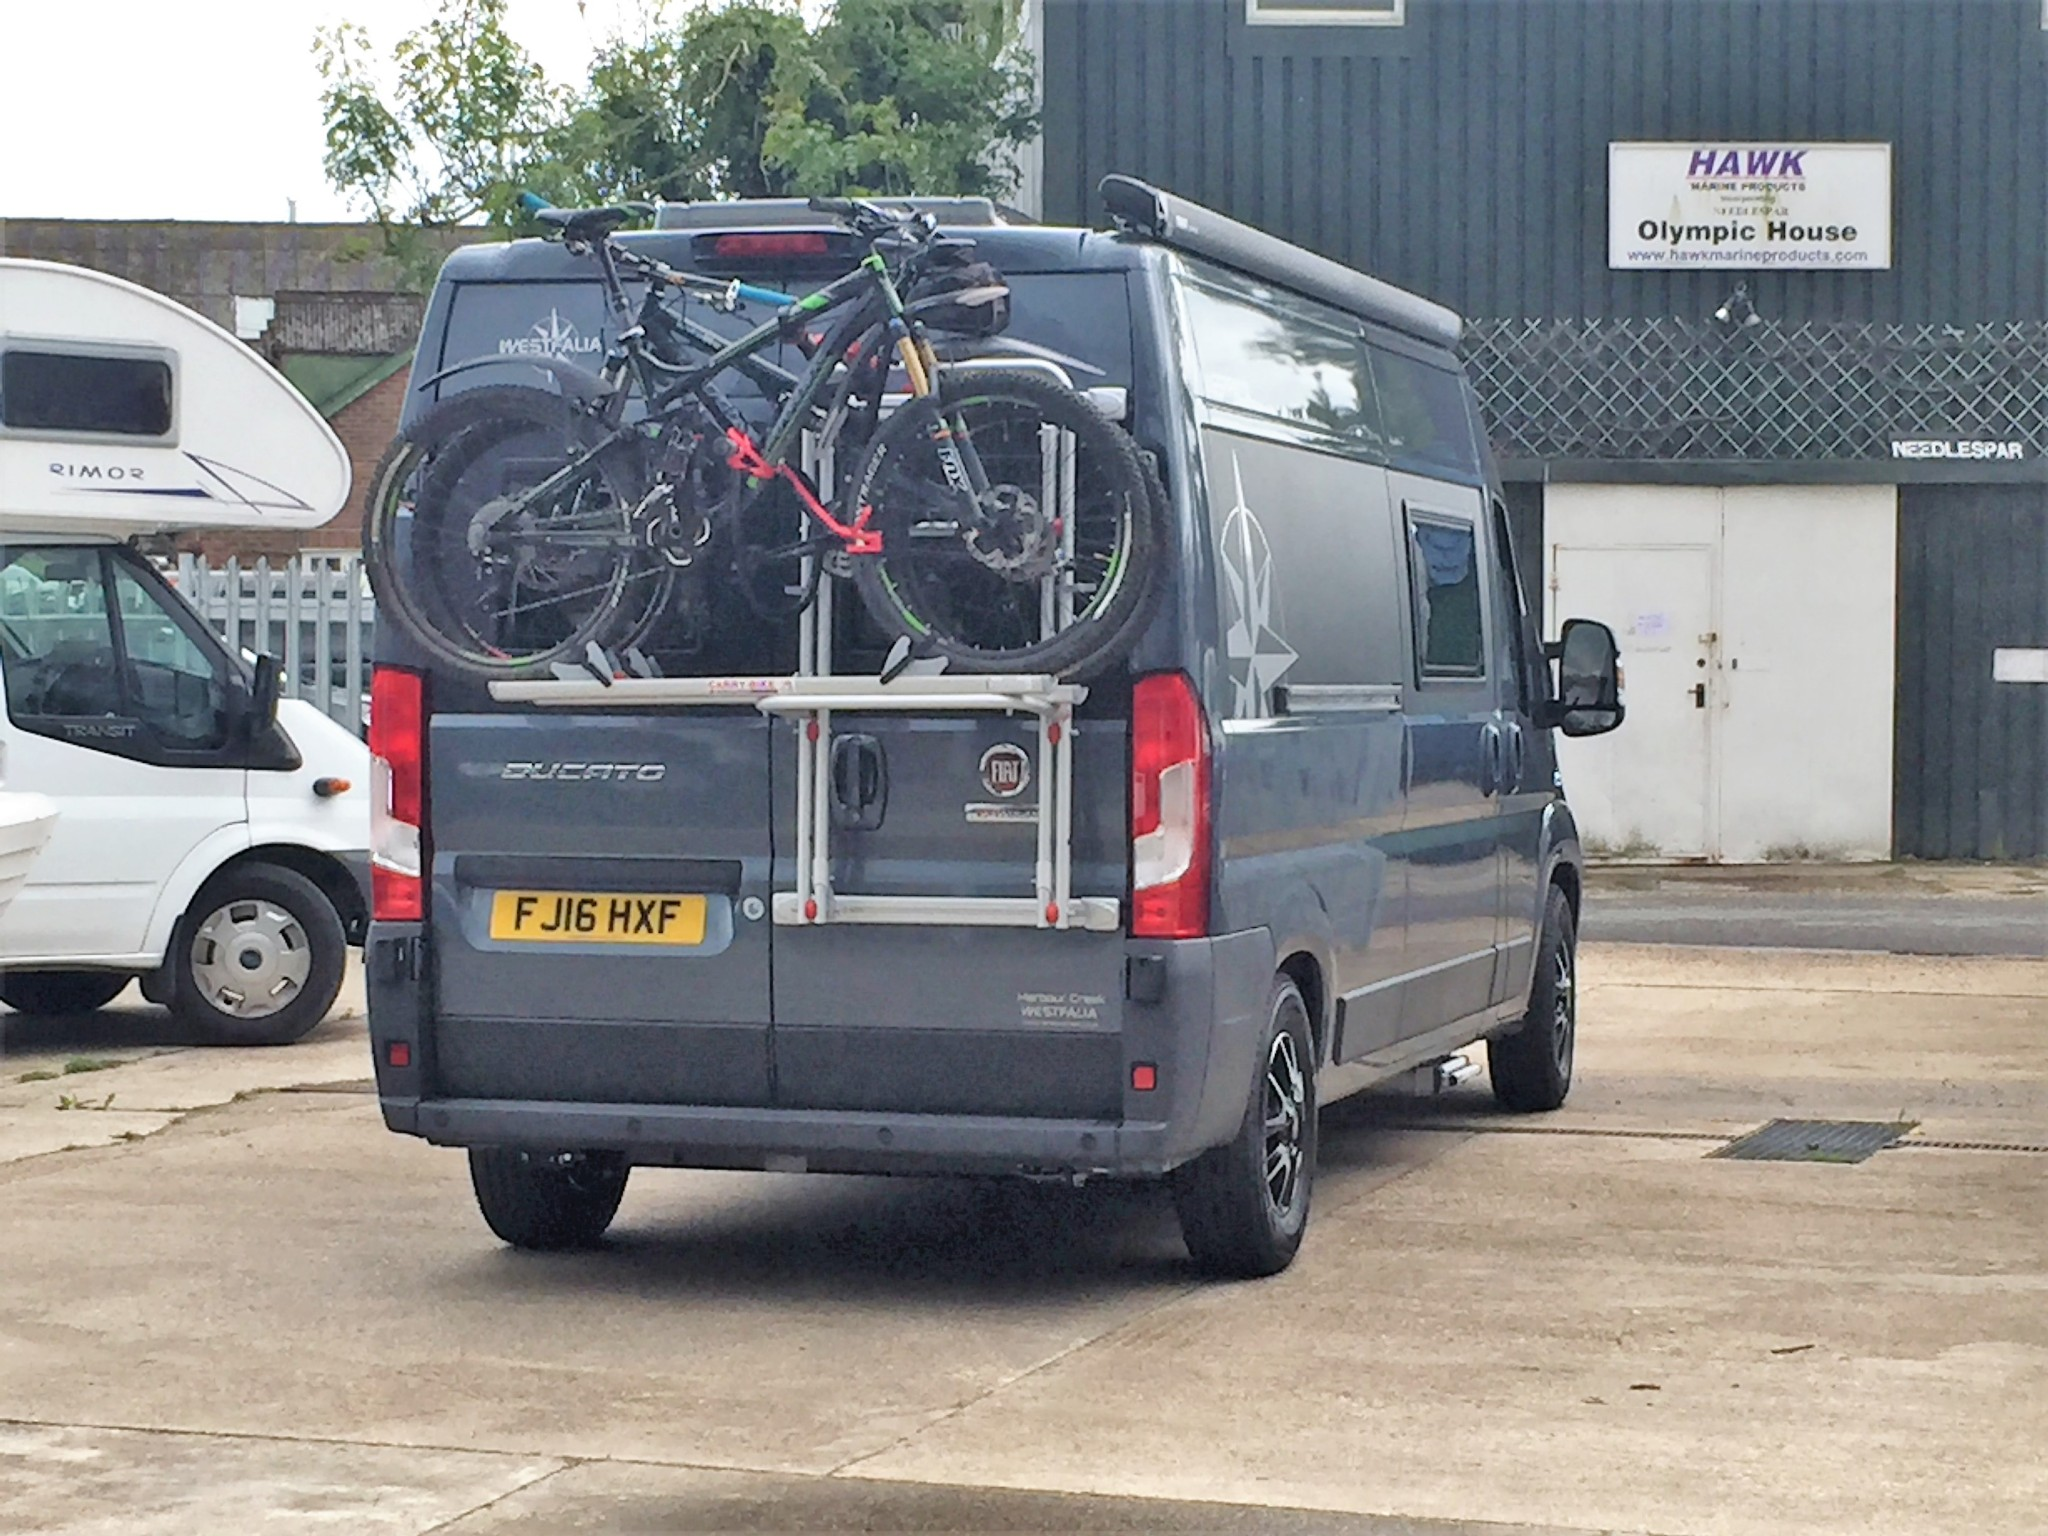 Westfalia Fiat Ducato Cycle Bike Rack 2 Bikes